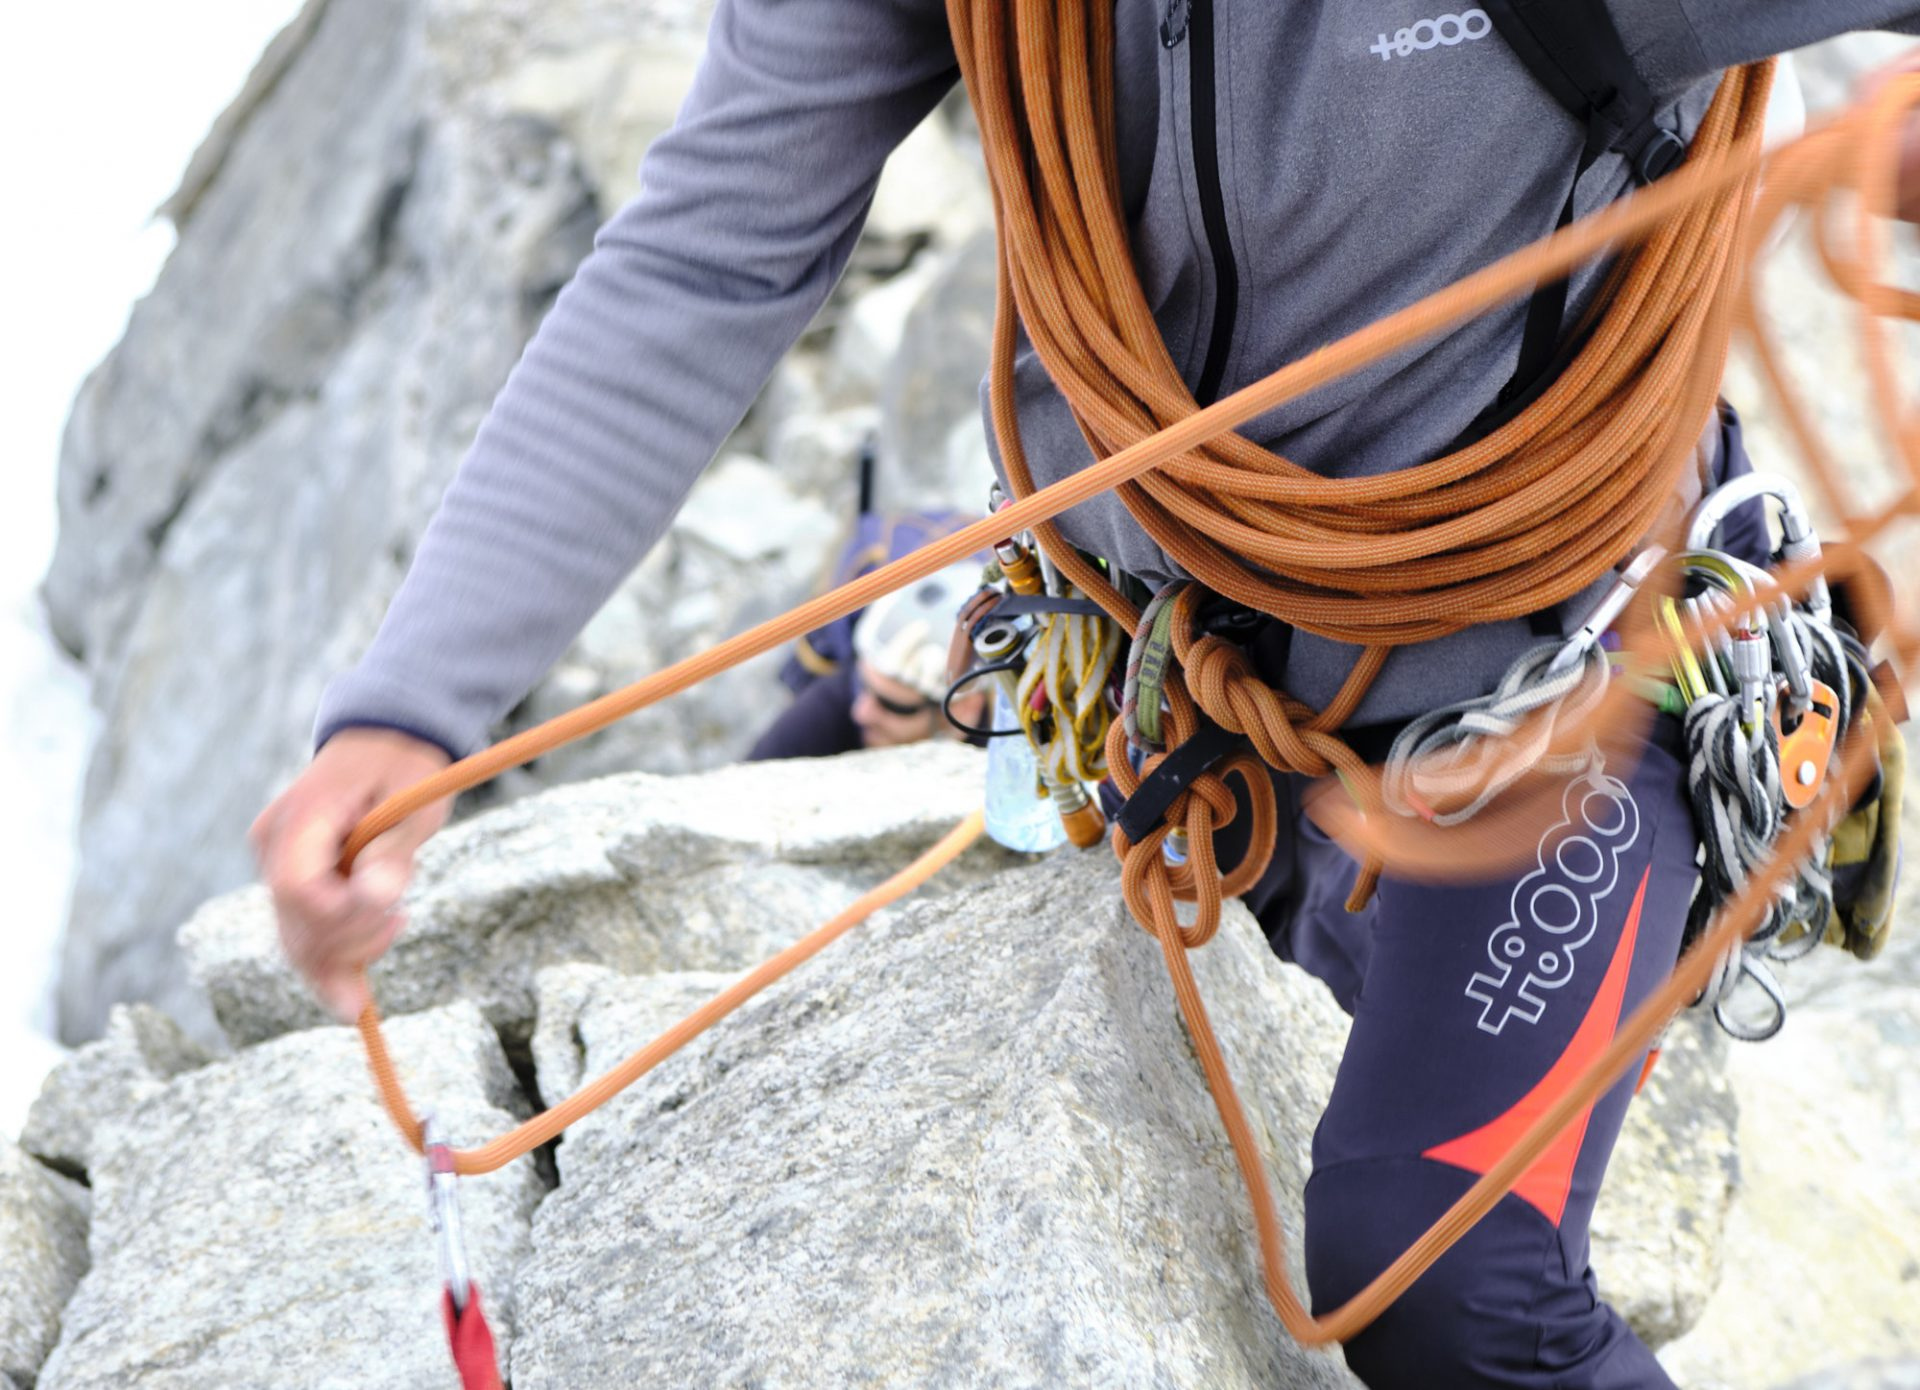 A person holding an orange climbing rope with both hands.